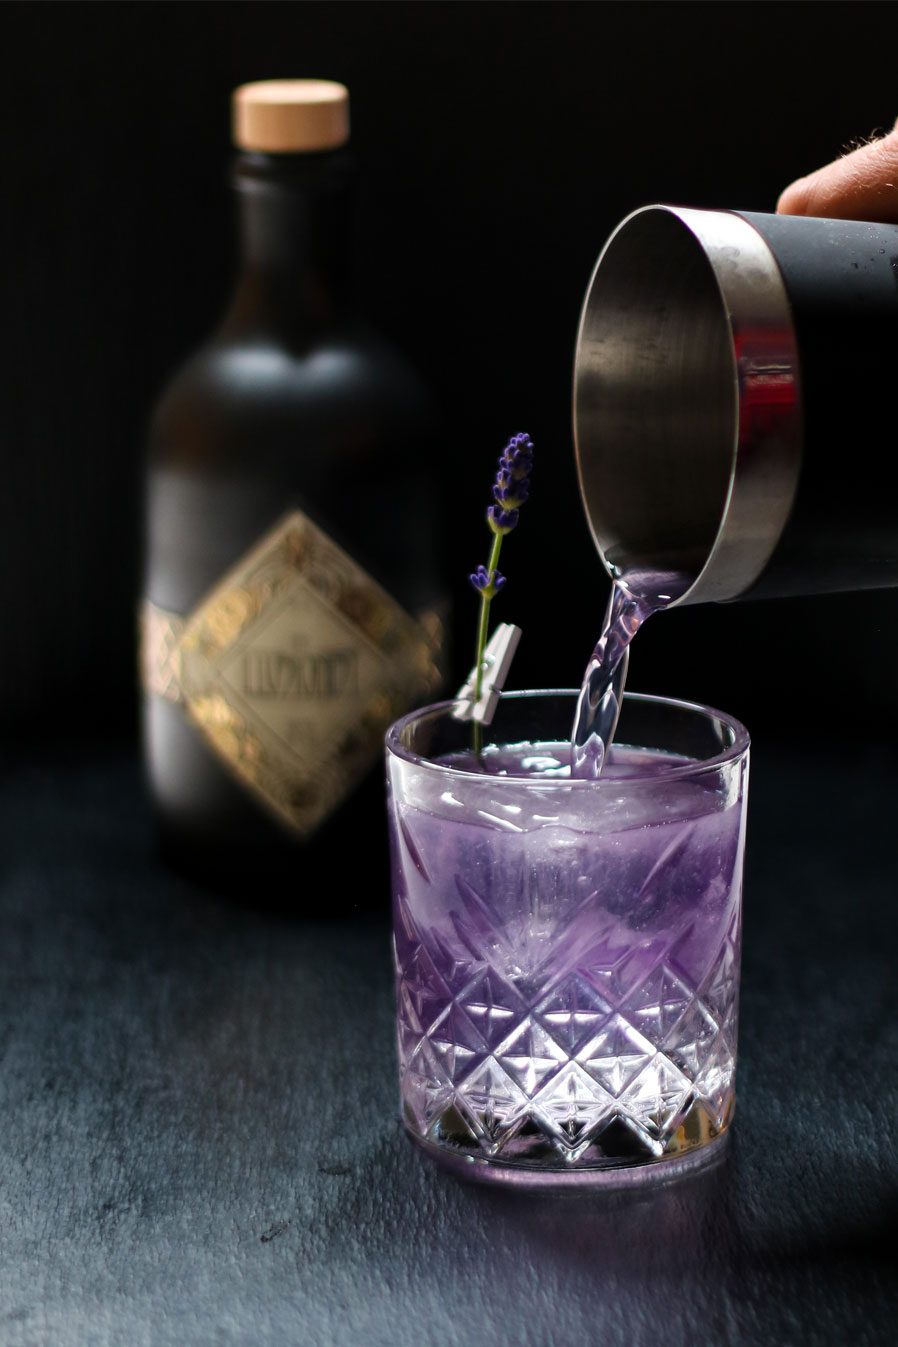 Less is More - …here's to the simple pleasures in life.5cl Illusionist Dry Gin1,5cl Freshly squeezed lemon juice1,5cl Violette syrup Fill with Tonic Water (@fevertree_de Indian / @fentimans_de Connoisseurs / @schweppes_de Dry) Garnish - Lavender stem